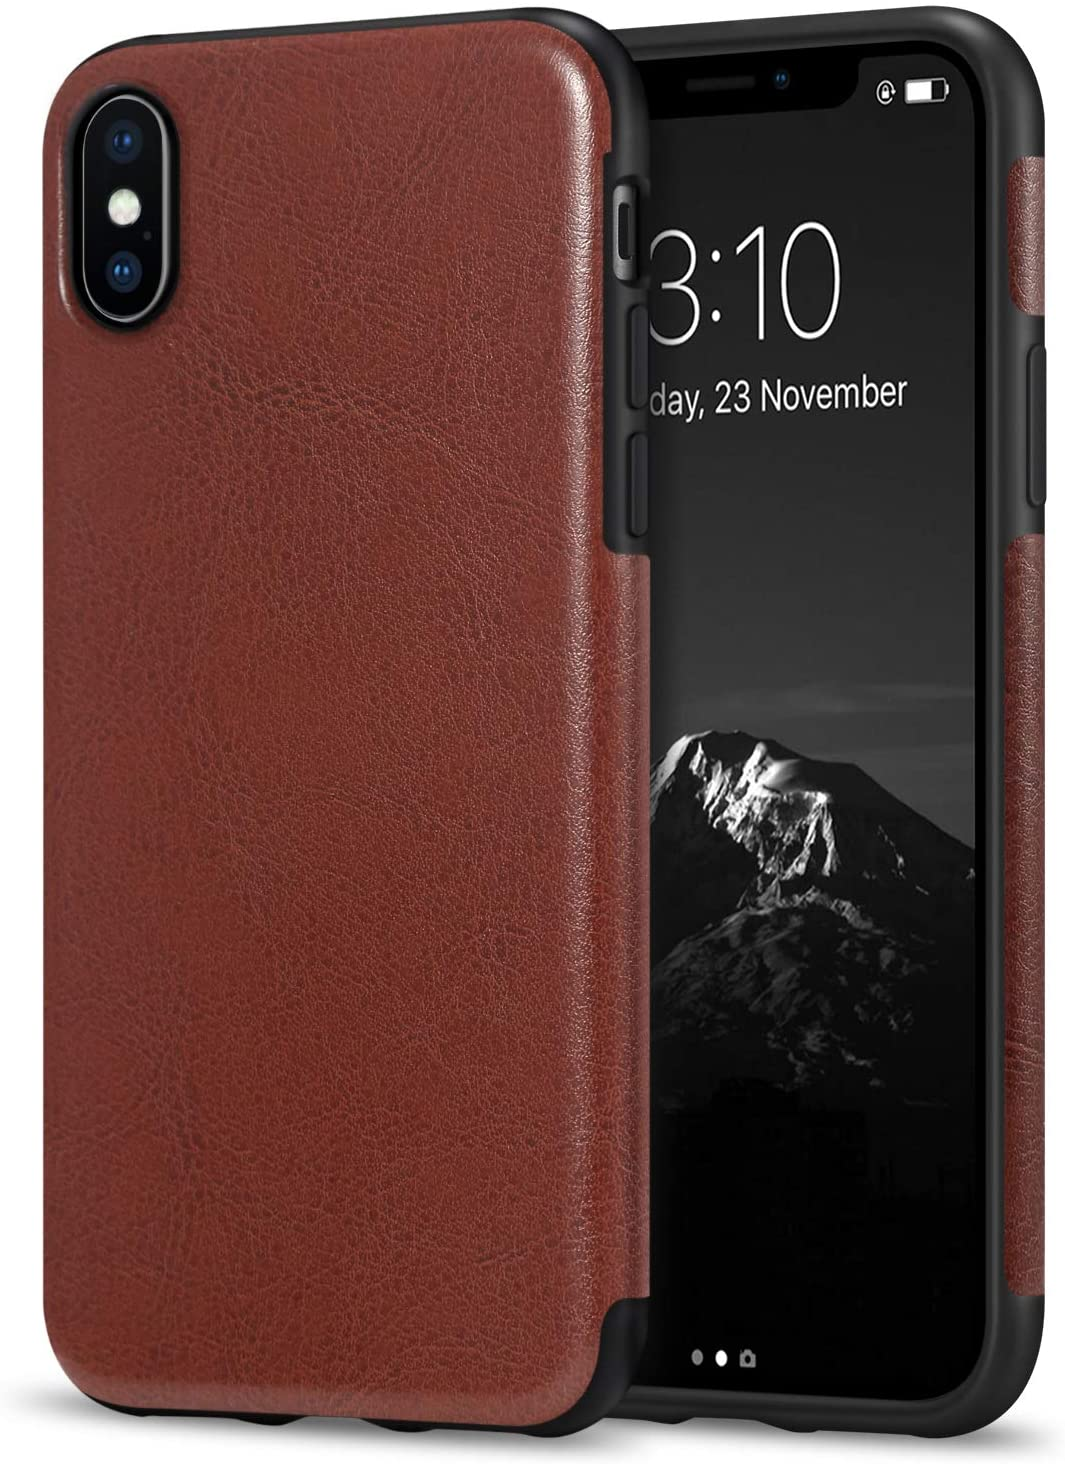 TENDLIN Compatible with iPhone Xs Max Case Premium Leather Outside and Flexible TPU Silicone Hybrid Slim Case Compatible with iPhone Xs Max - 2018 (Brown)